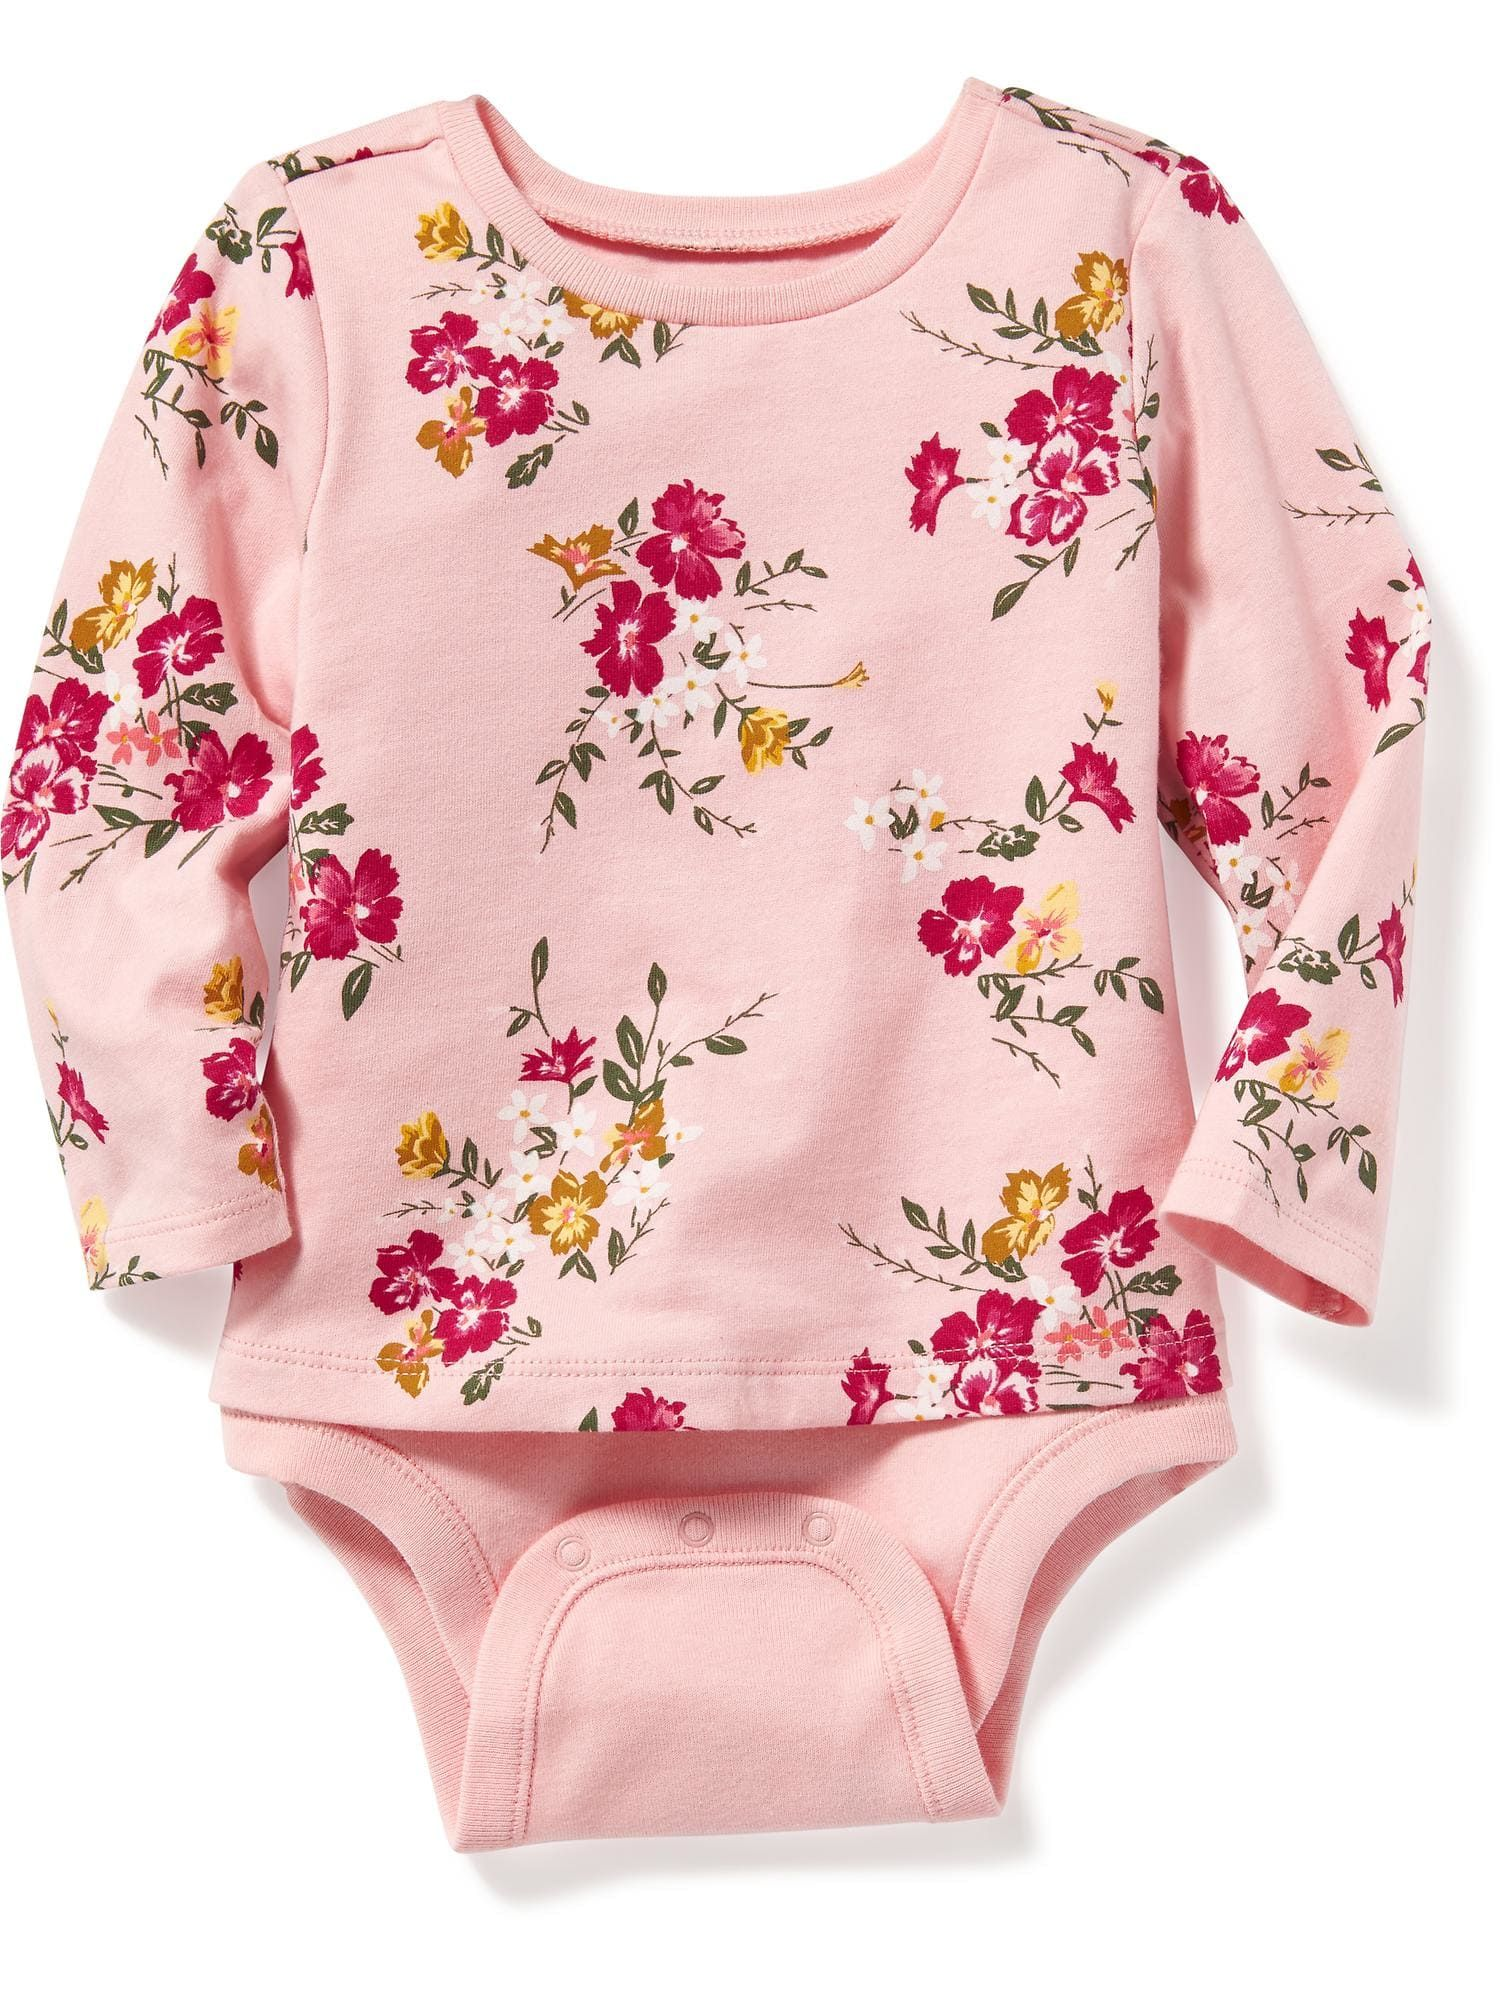 2 in 1 Swing Tee Bodysuit for Baby Old Navy